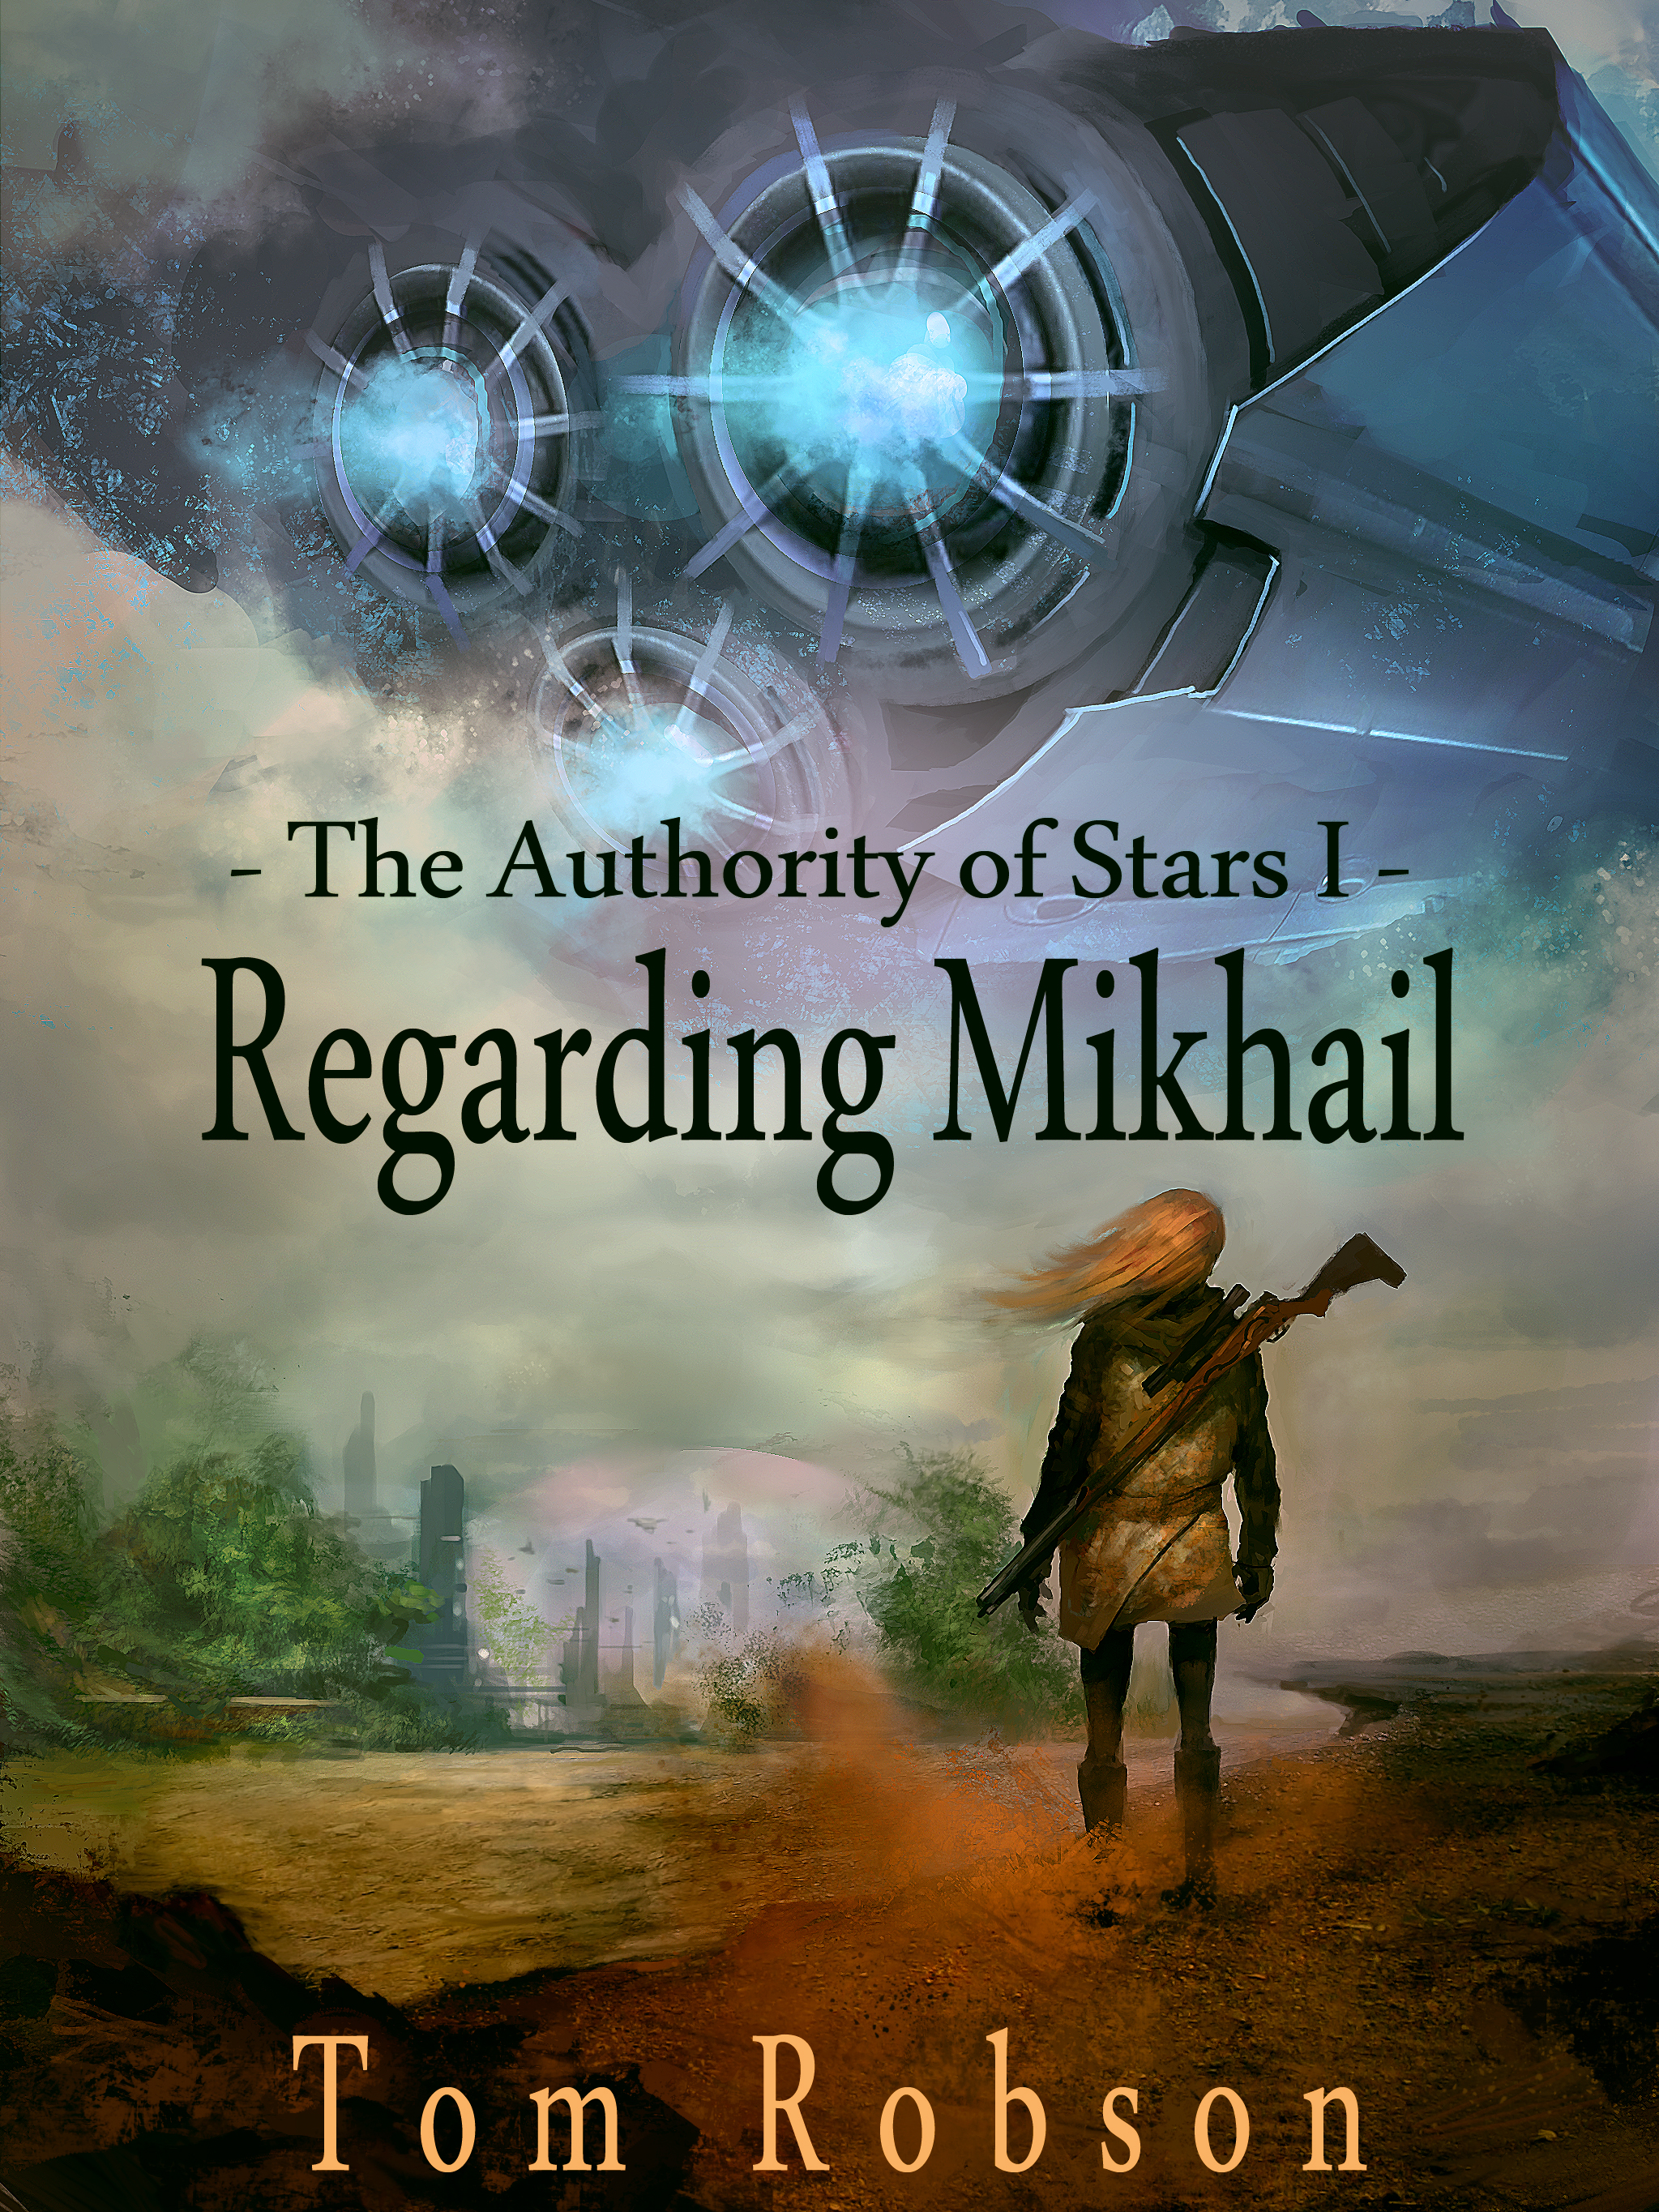 The Authority of Stars I - Regarding Mikhail